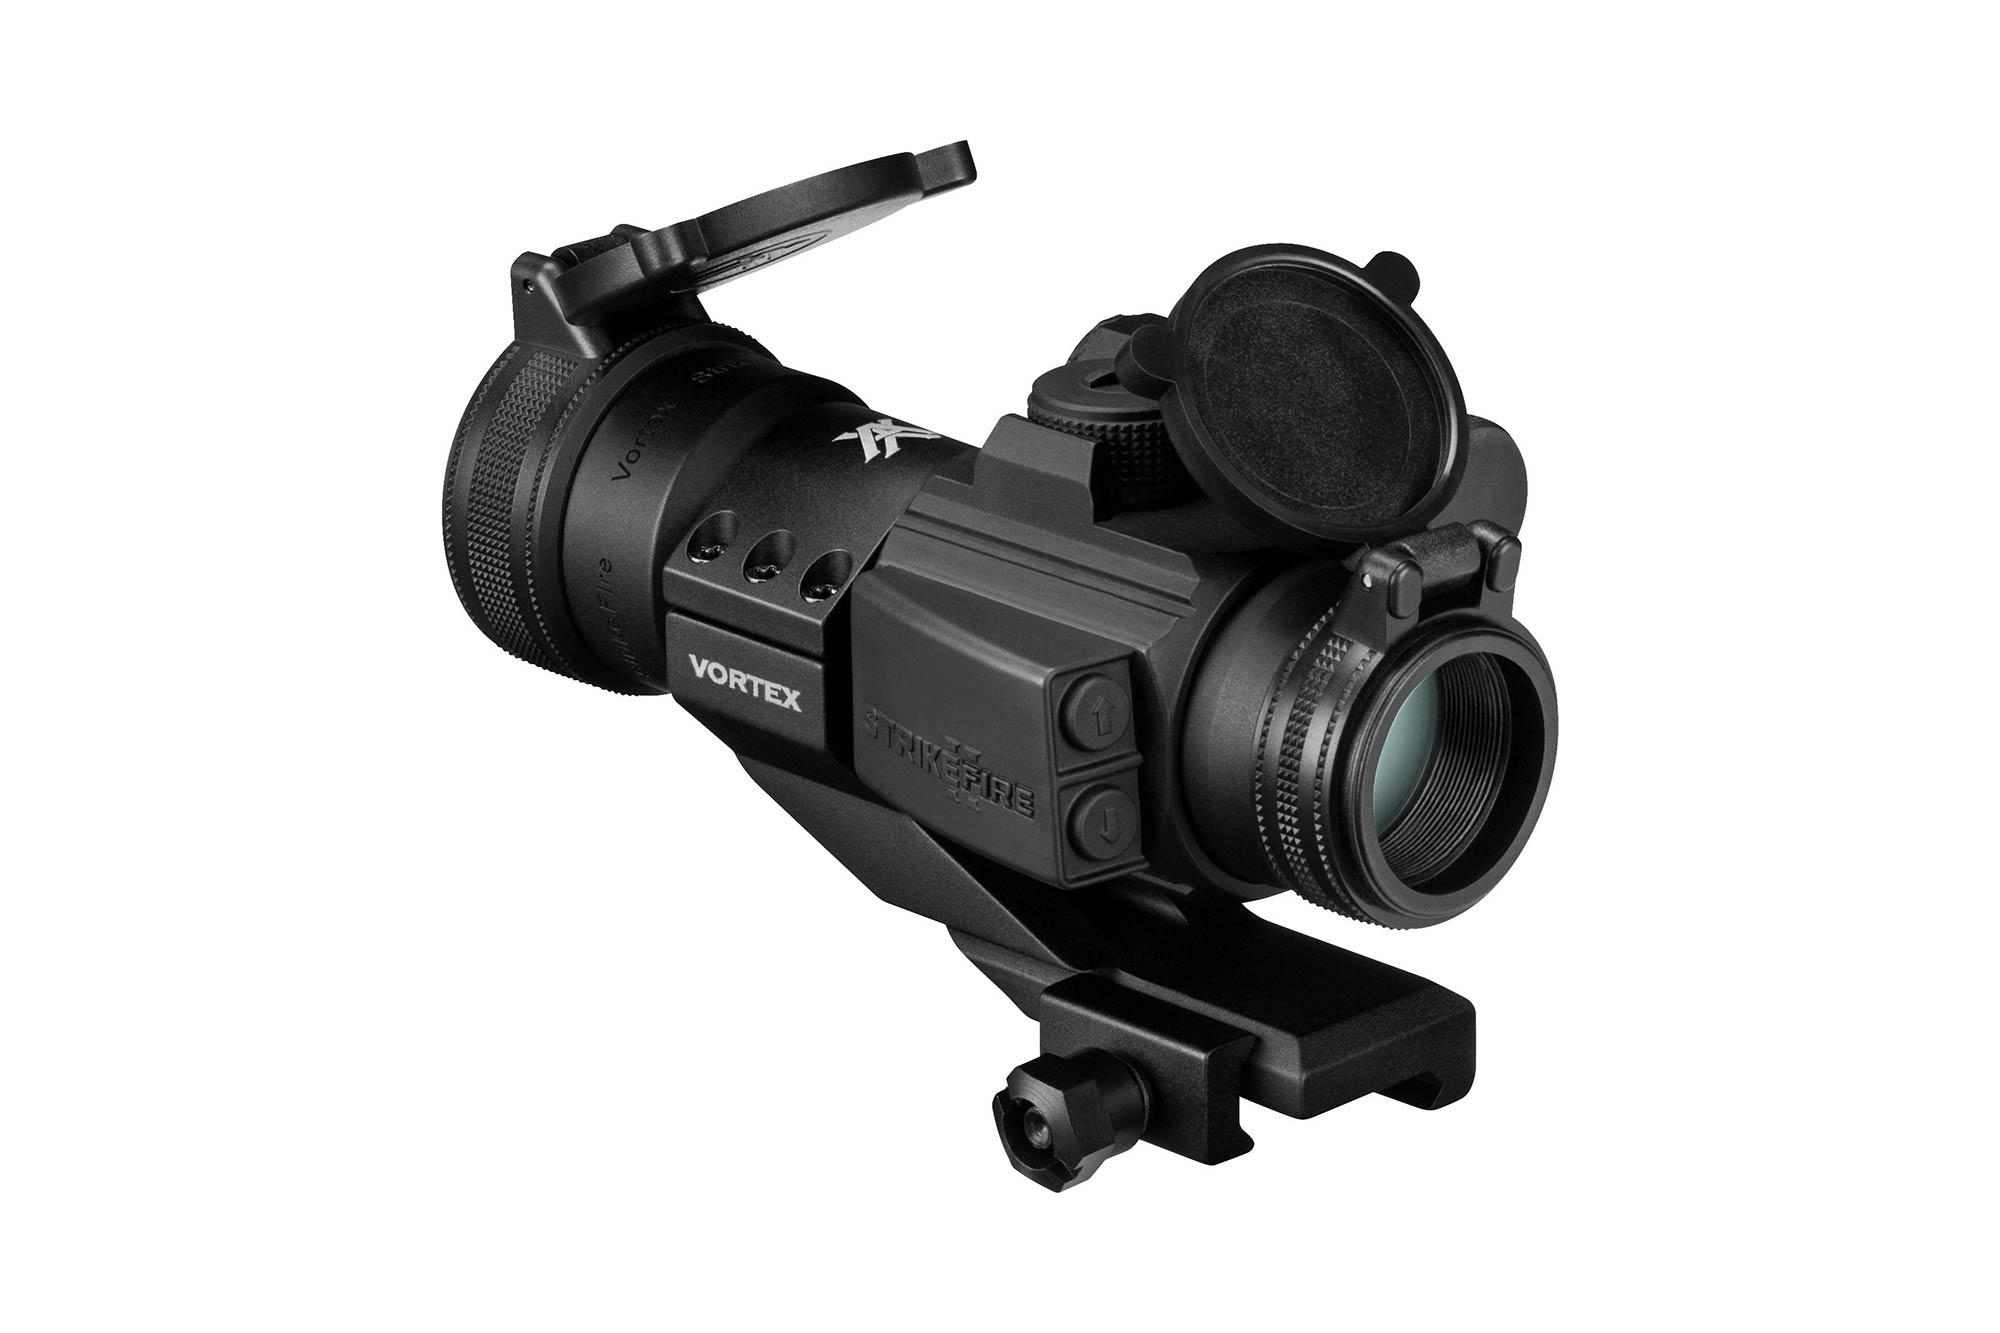 The StrikeFire II by vortec optics is an illuminated Bright Red Dot Sight with a 4 MOA dot for cqb